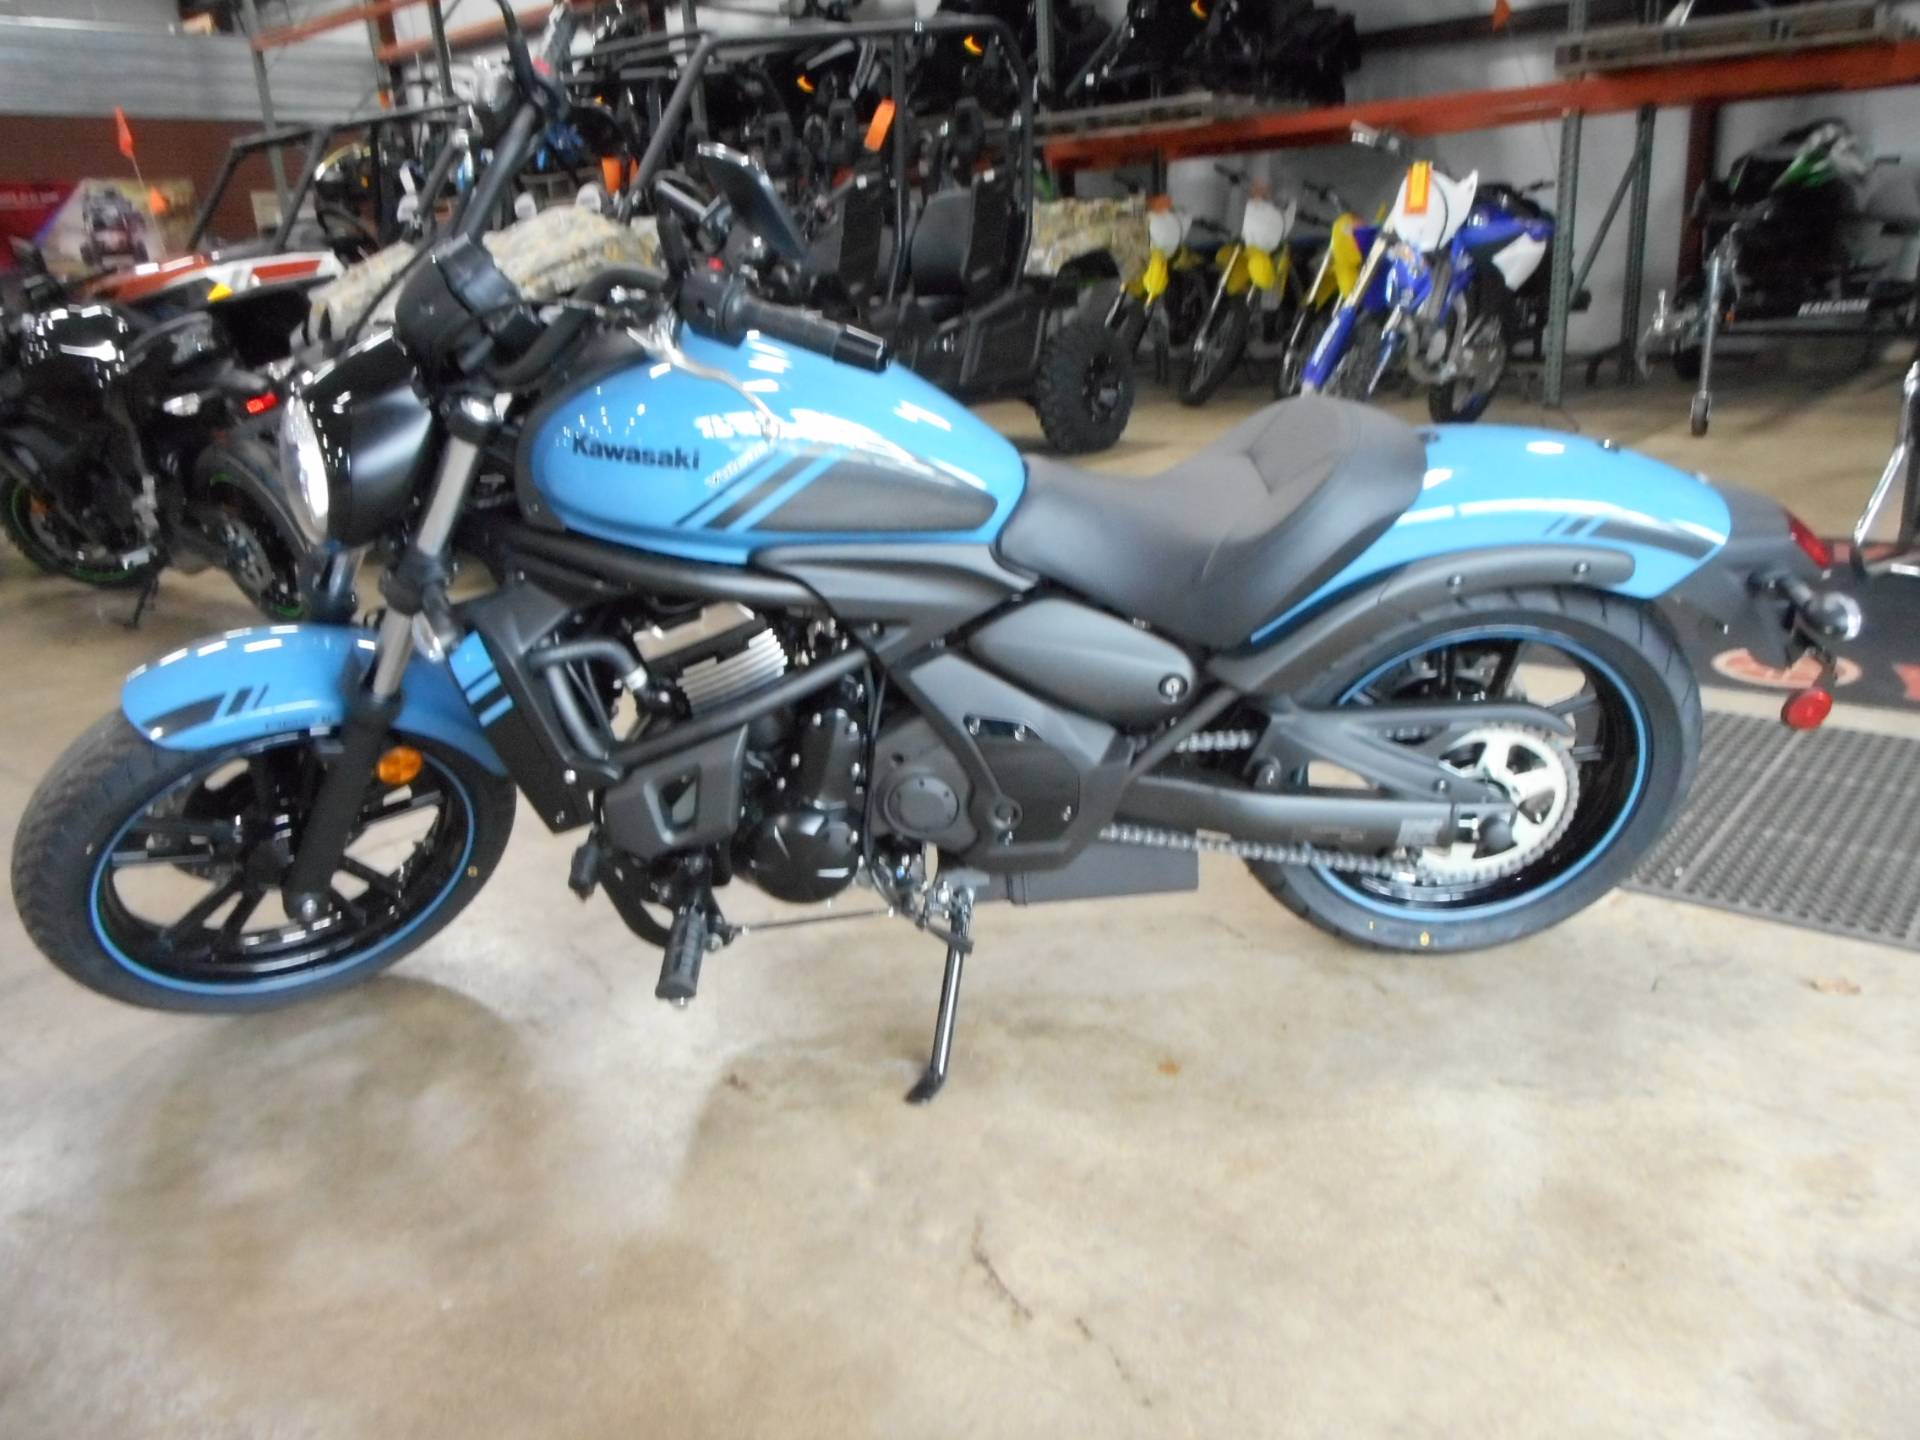 New 2019 Kawasaki Vulcan S Abs Motorcycles In Belvidere Il